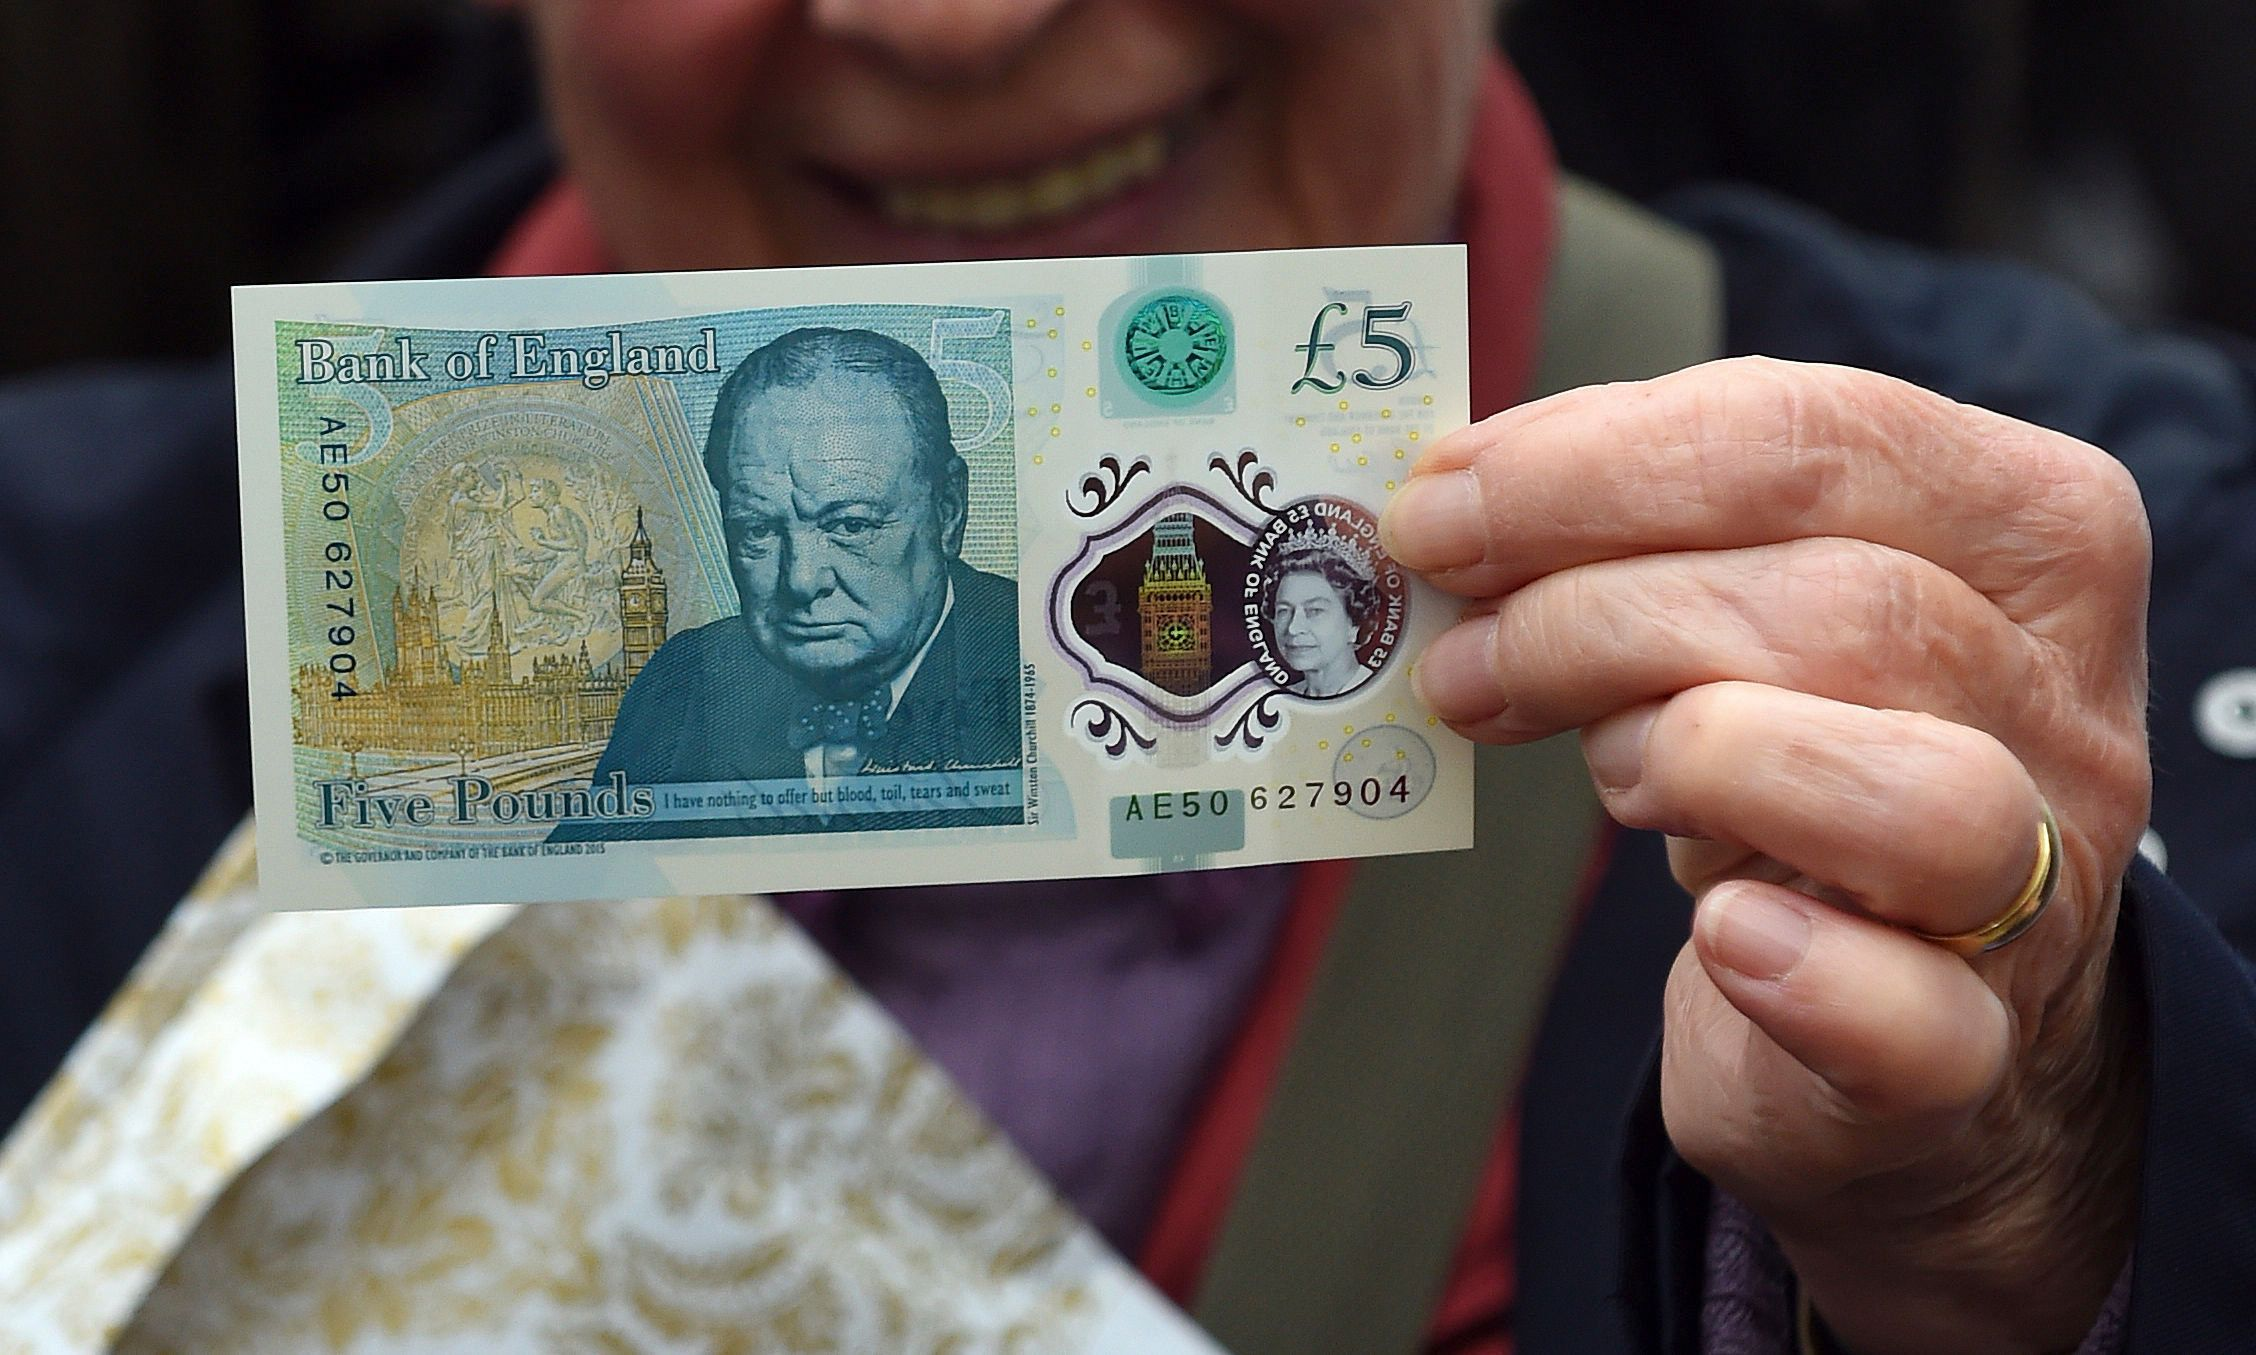 5 Things You Might Not Know About The Man On The New £5